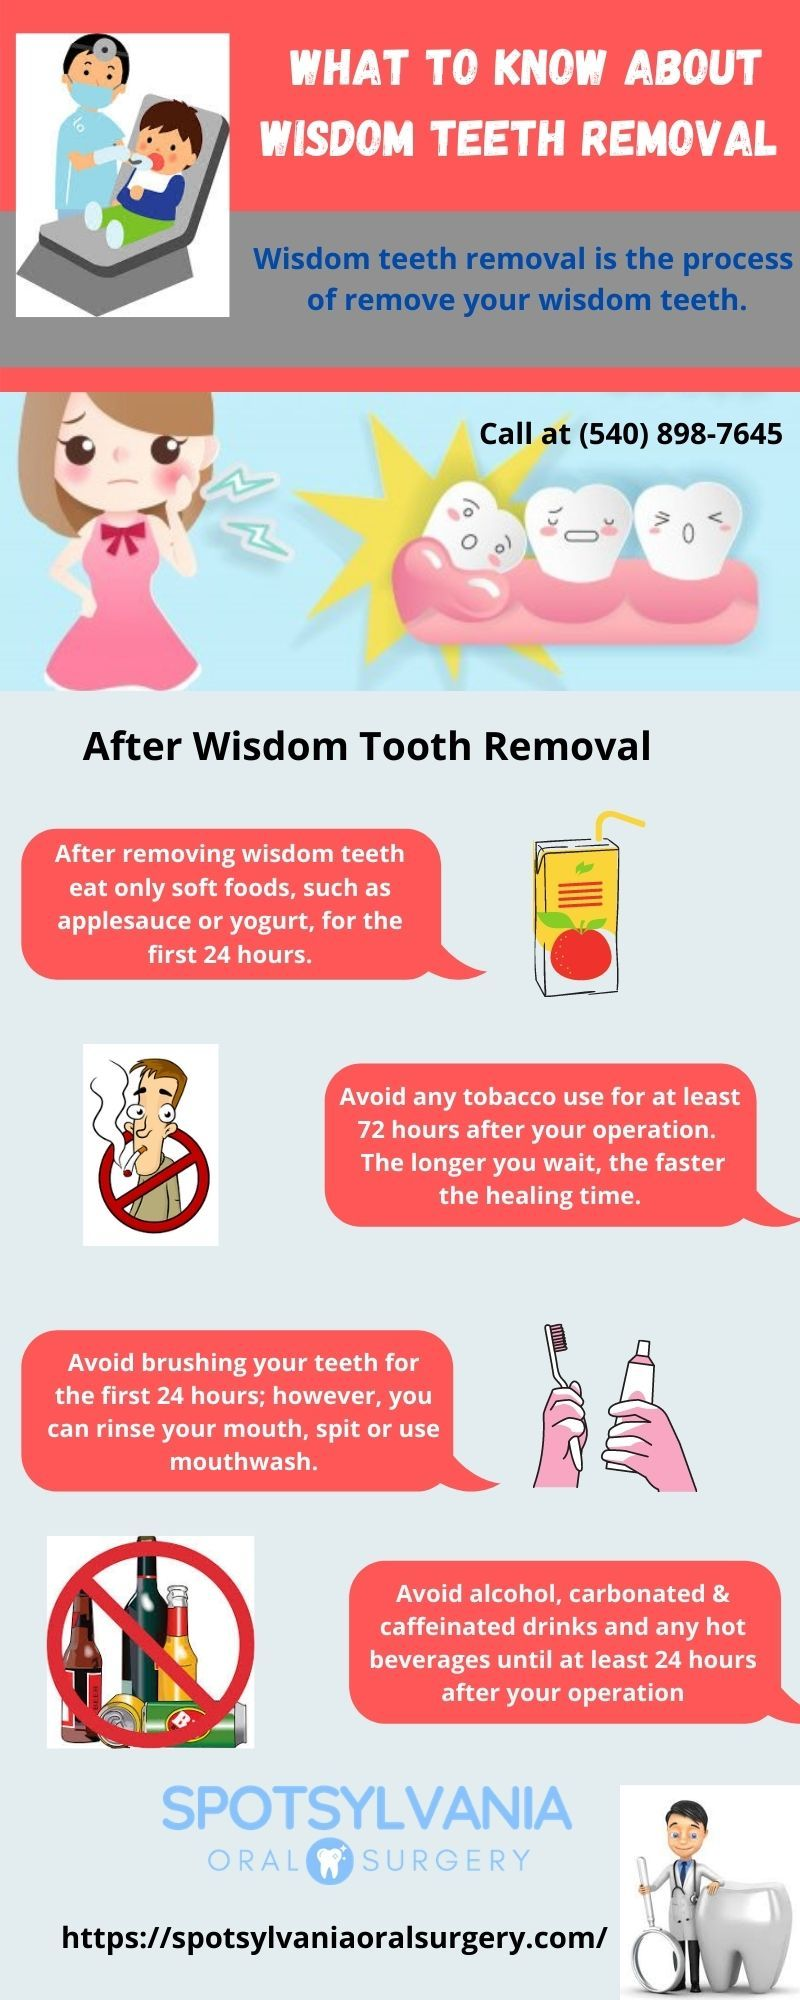 Wisdom Teeth Removal Is The Process Of Removing Your Wisdom Teeth After Removing Wisdom Teeth Eat Only Dental Surgeon Dental Emergency Emergency Dental Care